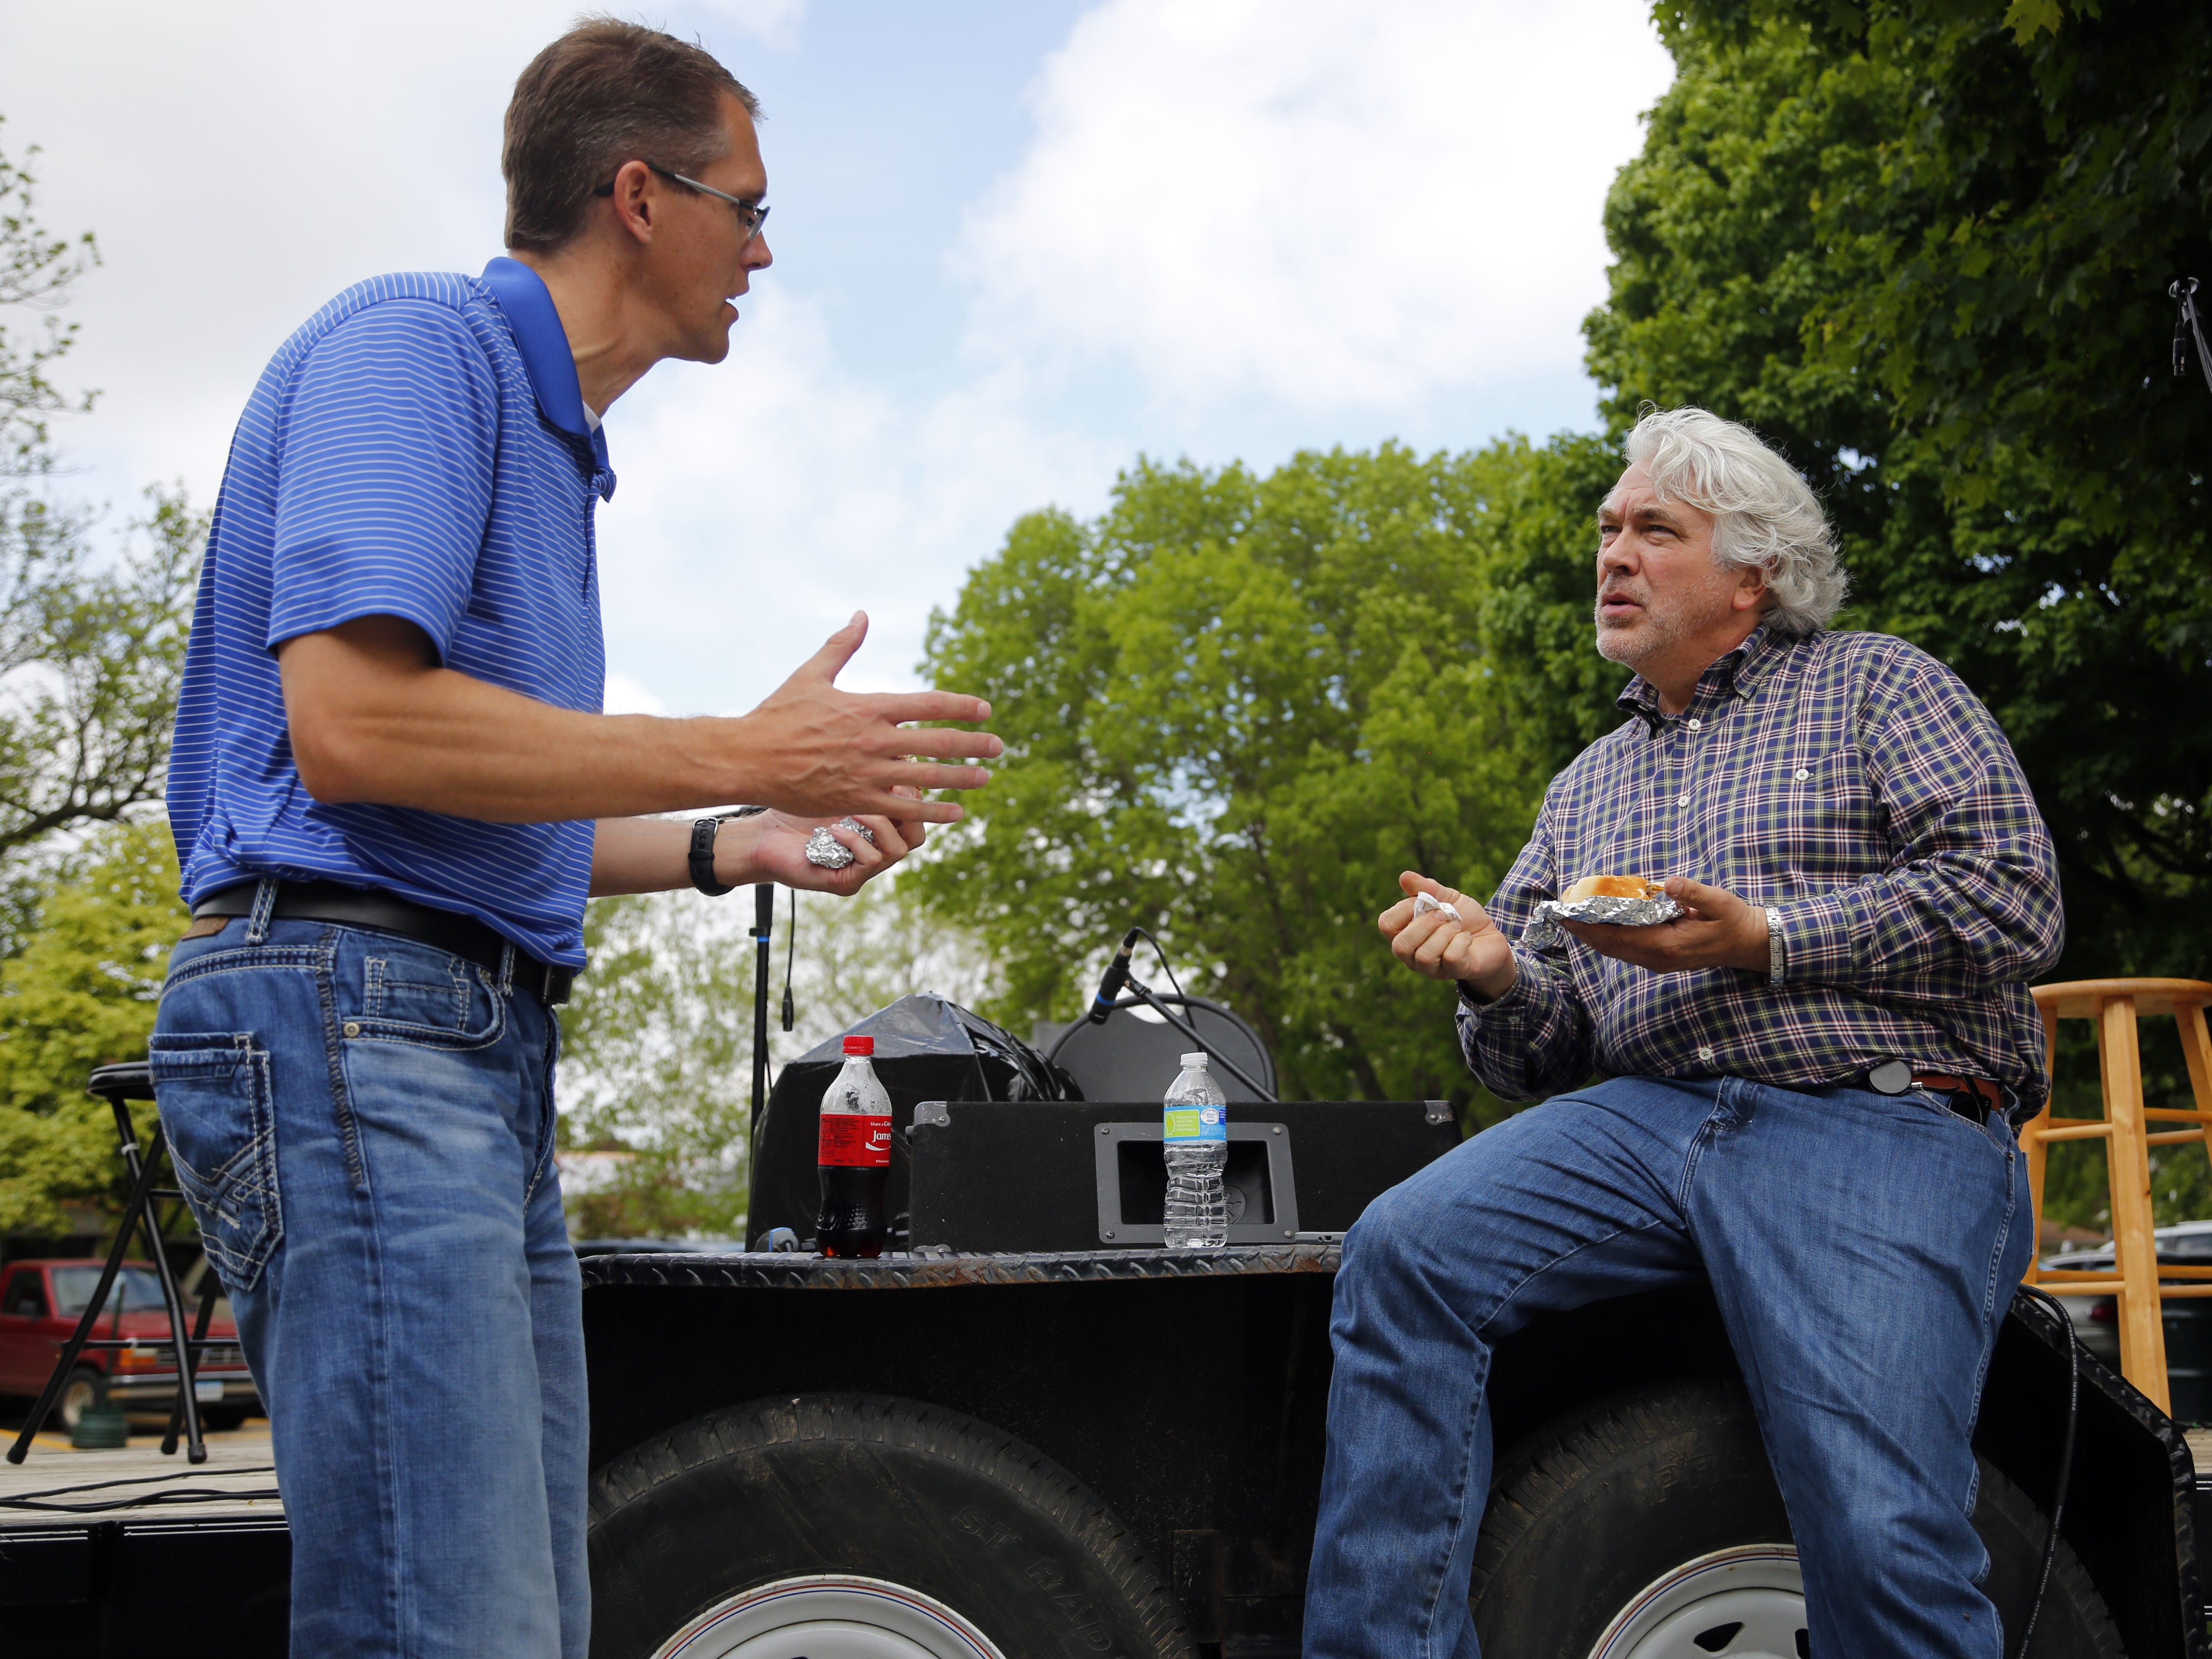 State Sen. Randy Feenstra, R-Hull, and Des Moines Water Works CEO Bill Stowe talk over water issues at the Tulip Festival in Orange City in 2015.